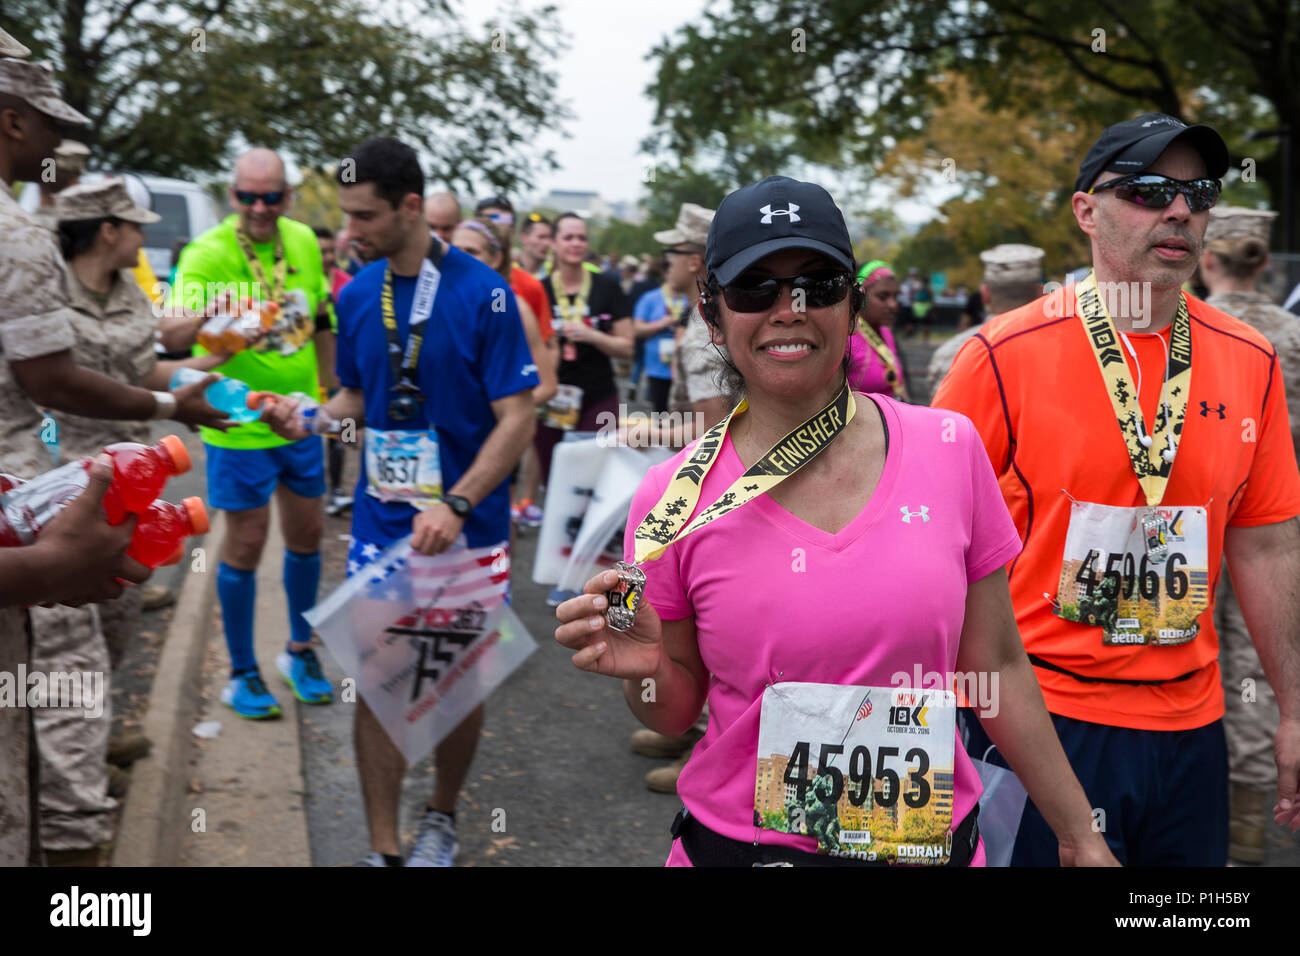 "Mirasol Espanola shows off the medal she received for finishing the 41st Marine Corps Marathon 10k, Arlington, Va., Oct. 30, 2016. Also known as ""The People's Marathon,"" the 26.2 mile race drew roughly 30,000 participants to promote physical fitness, generate goodwill in the community, and showcase the organizational skills of the Marine Corps. (U.S. Marine Corps photo by Lance Cpl. Alexander Cockrell) Stock Photo"